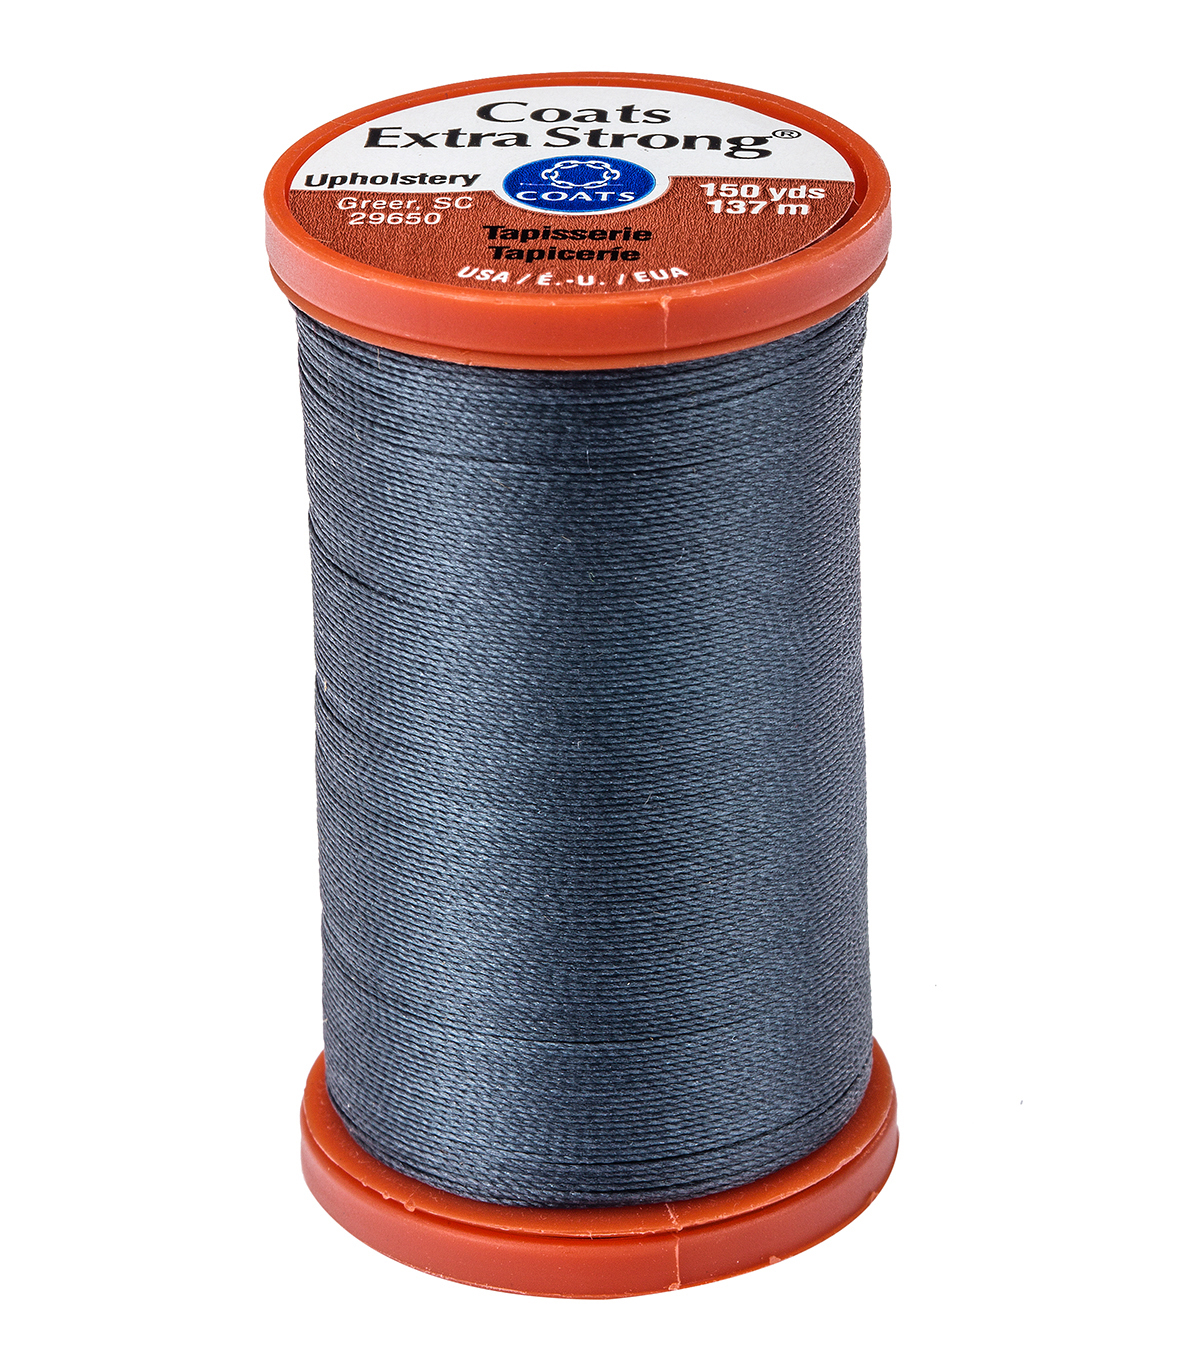 Coats & Clark Extra Strong & Upholstery Thread 150 yd , Navy